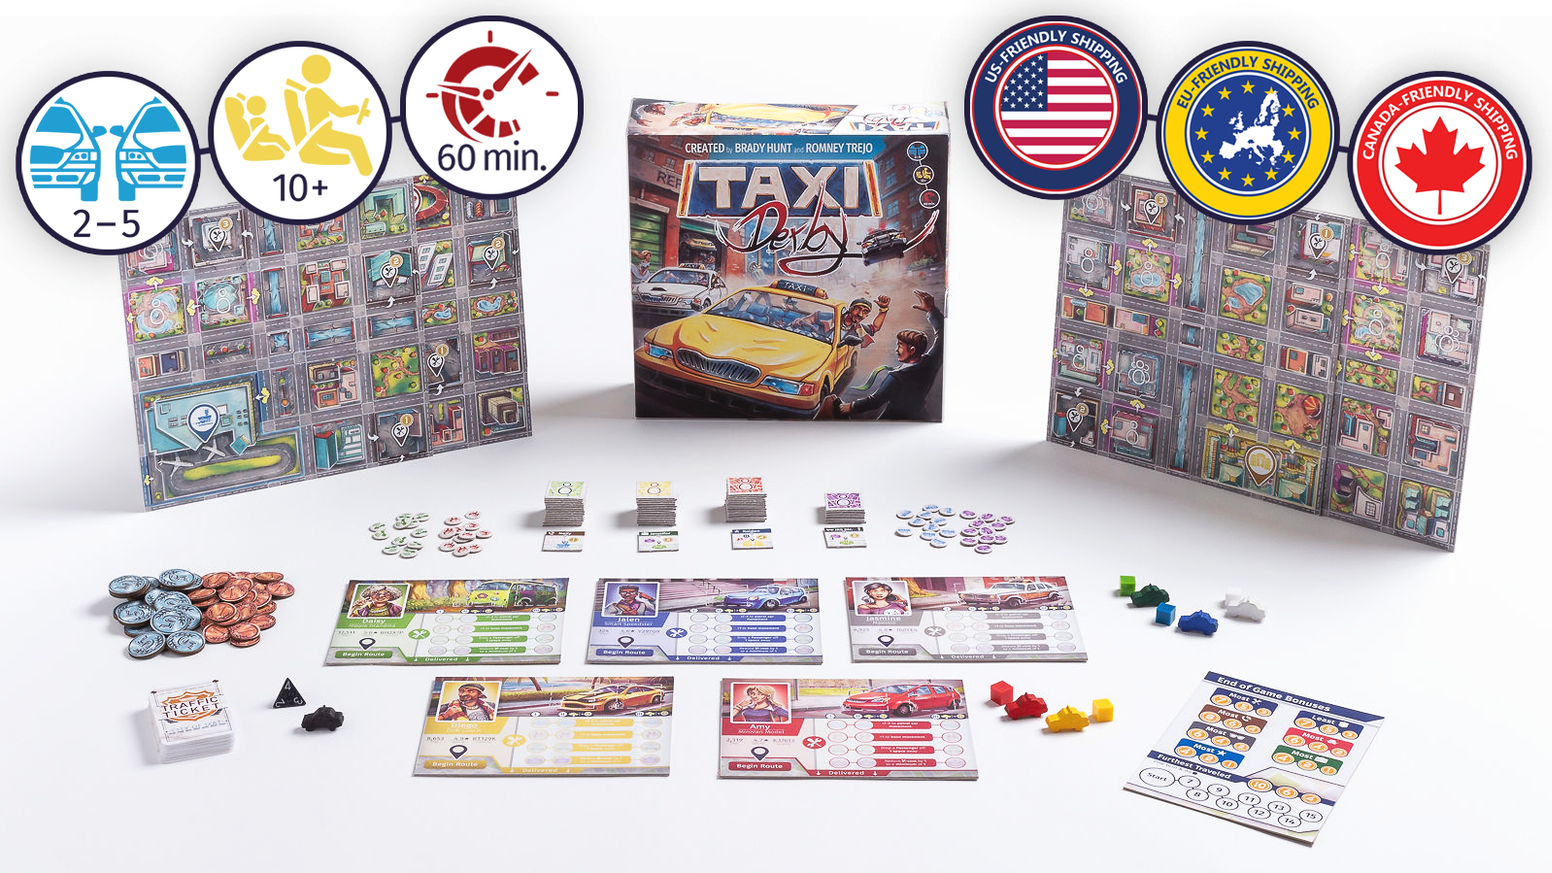 Race to pick up and deliver passengers without pushing your luck too much in this 60-minute board game for 1-5 players.